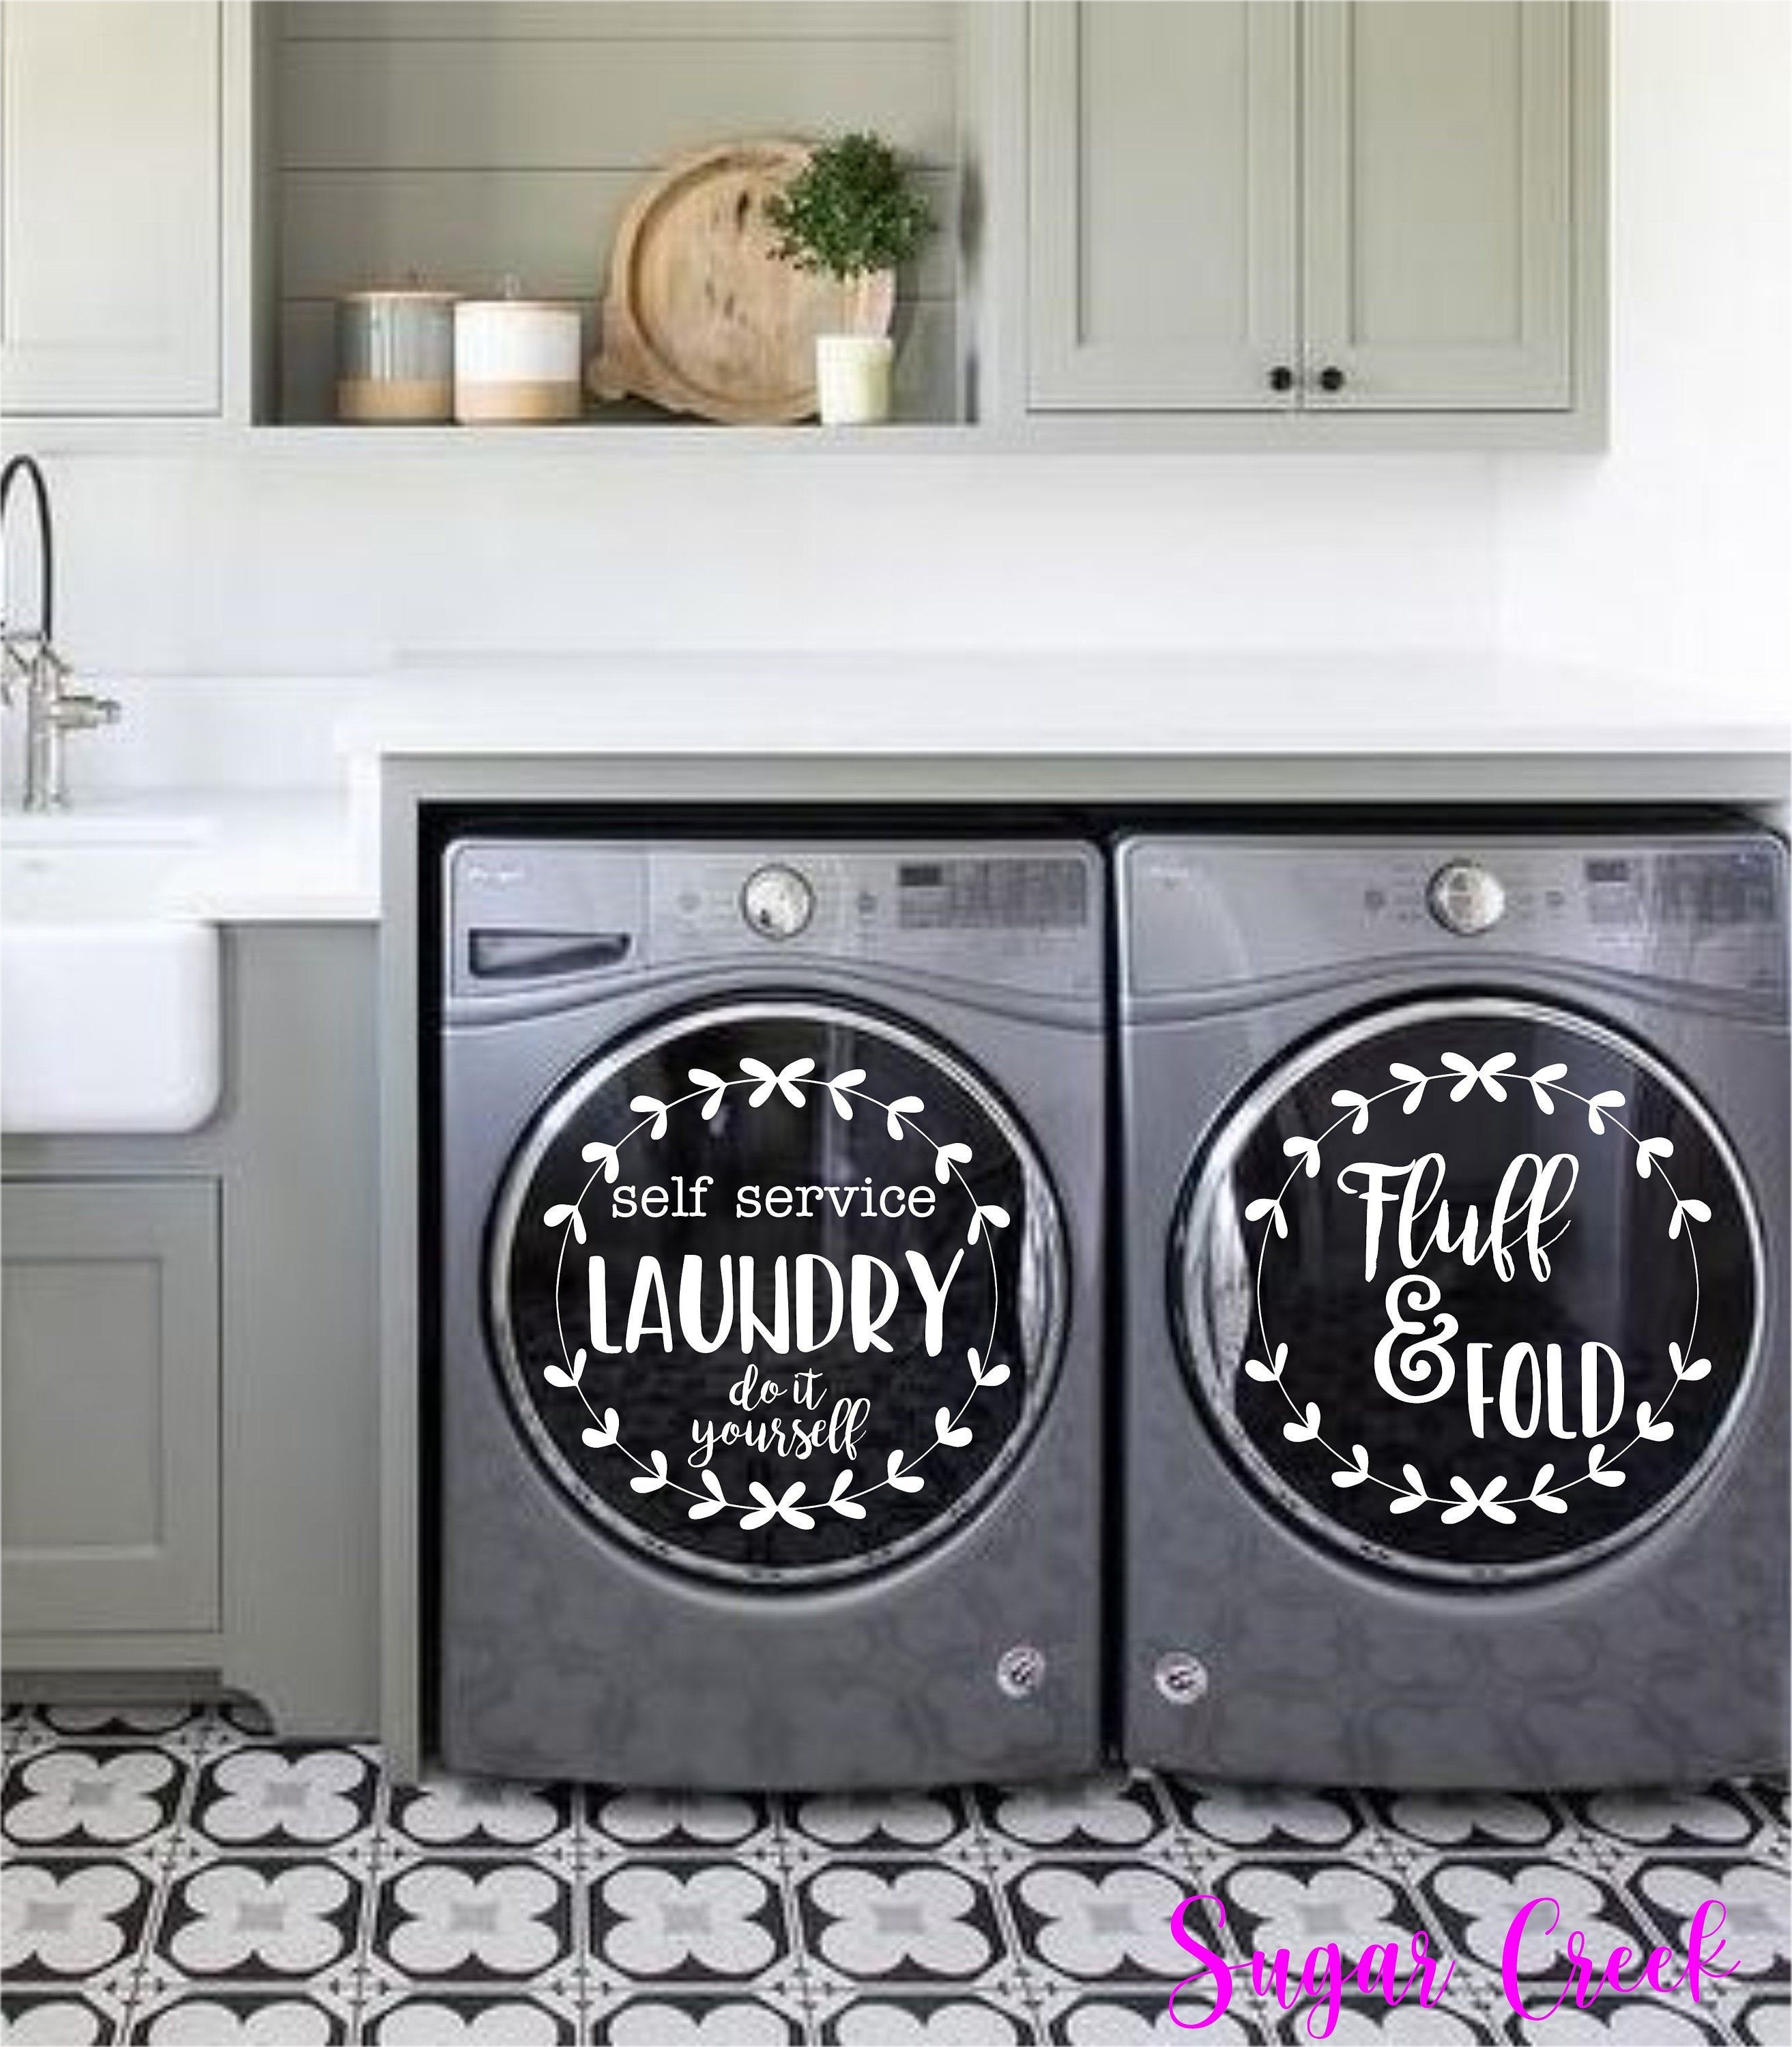 Laundry Room Decor Laundry Self Service Do It Yourself Fold Etsy In 2020 Laundry Room Decor Laundry Room Decals Laundry Room